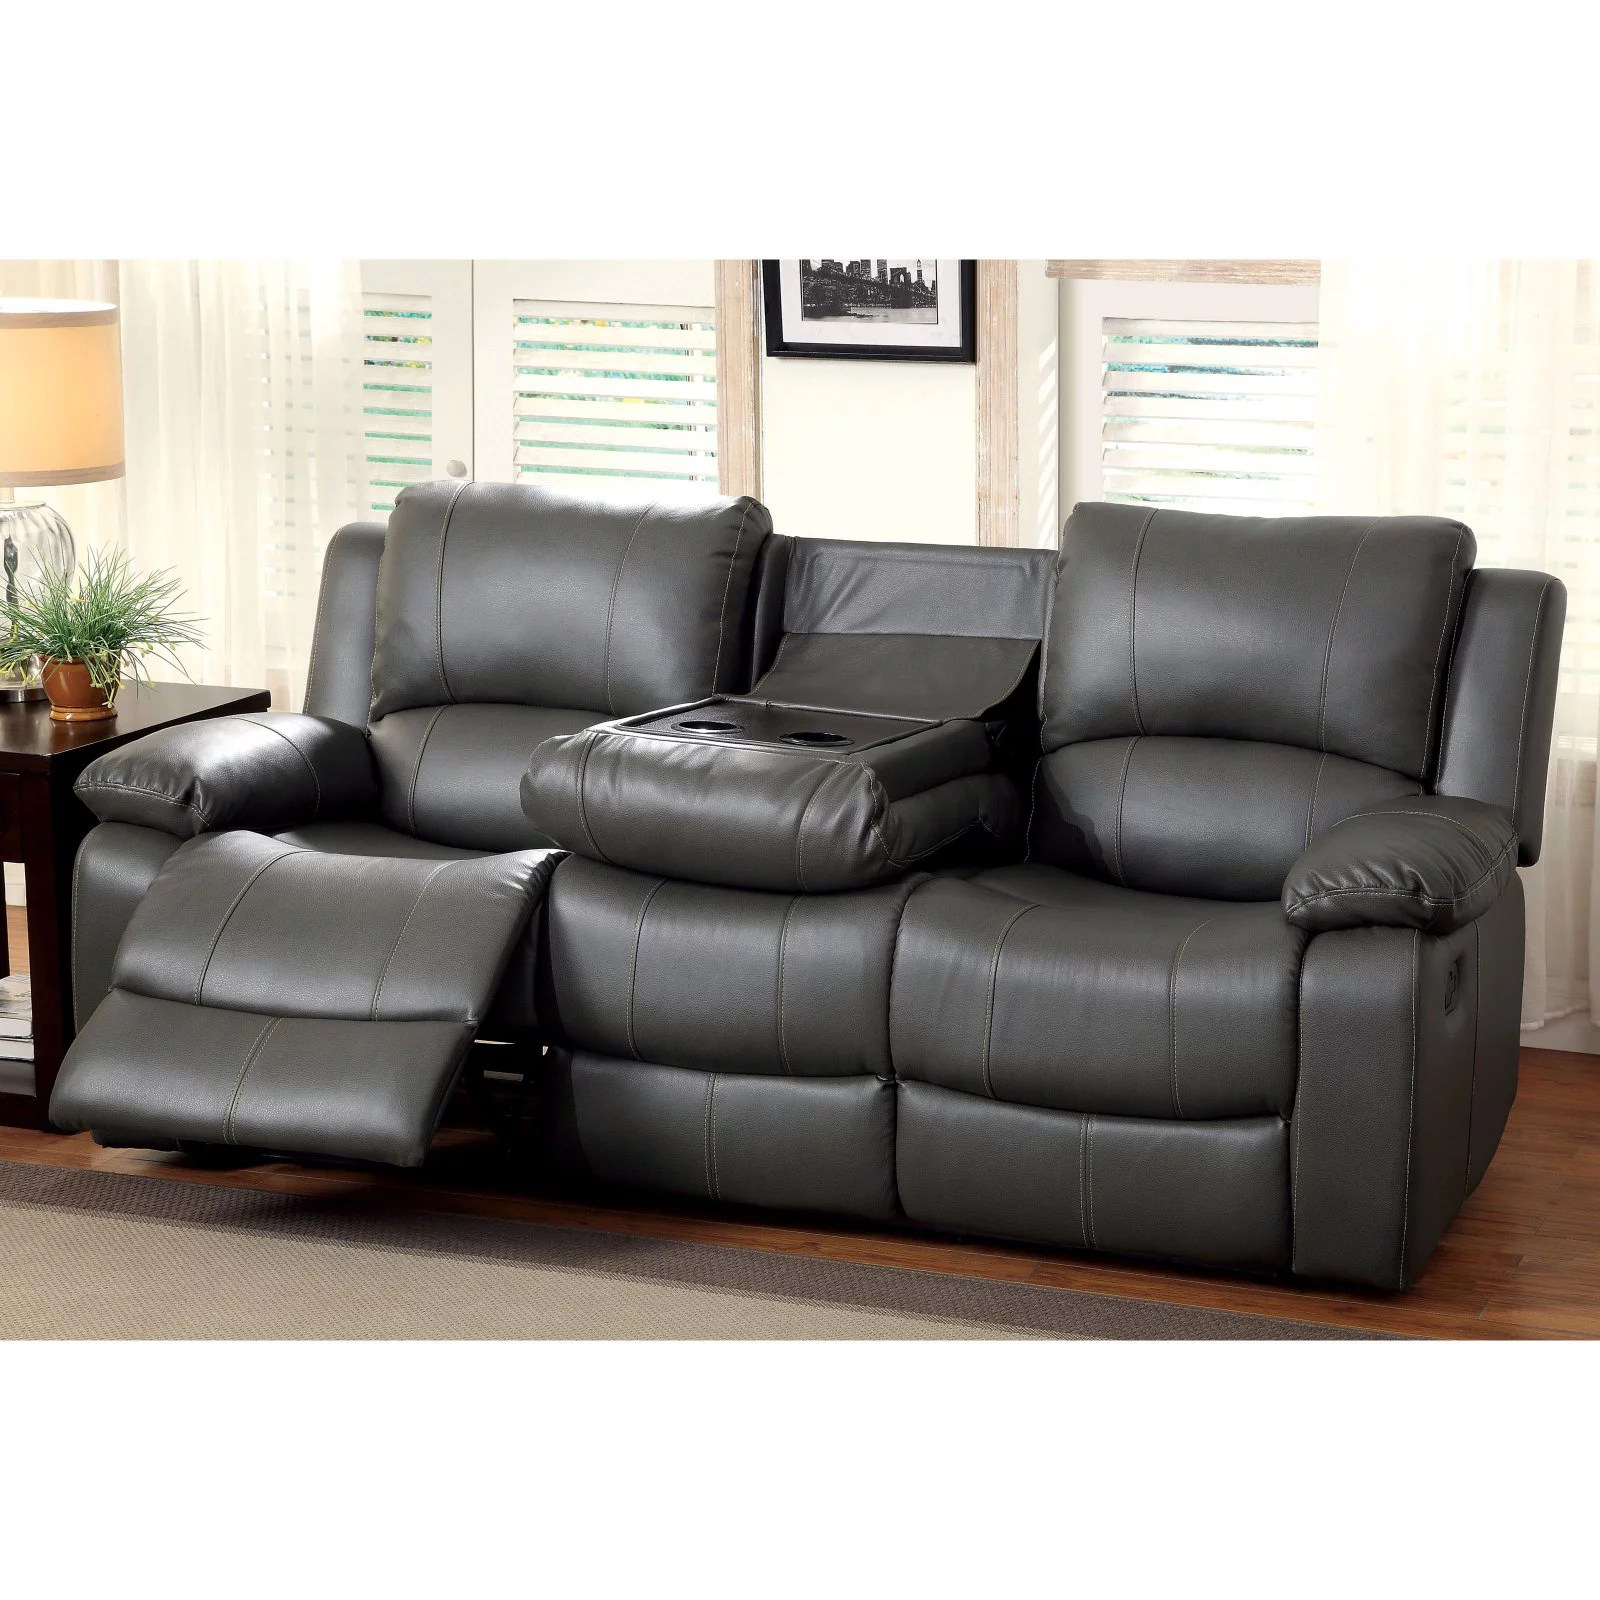 furniture of america rathbone recliner sofa with cup holders walmart com